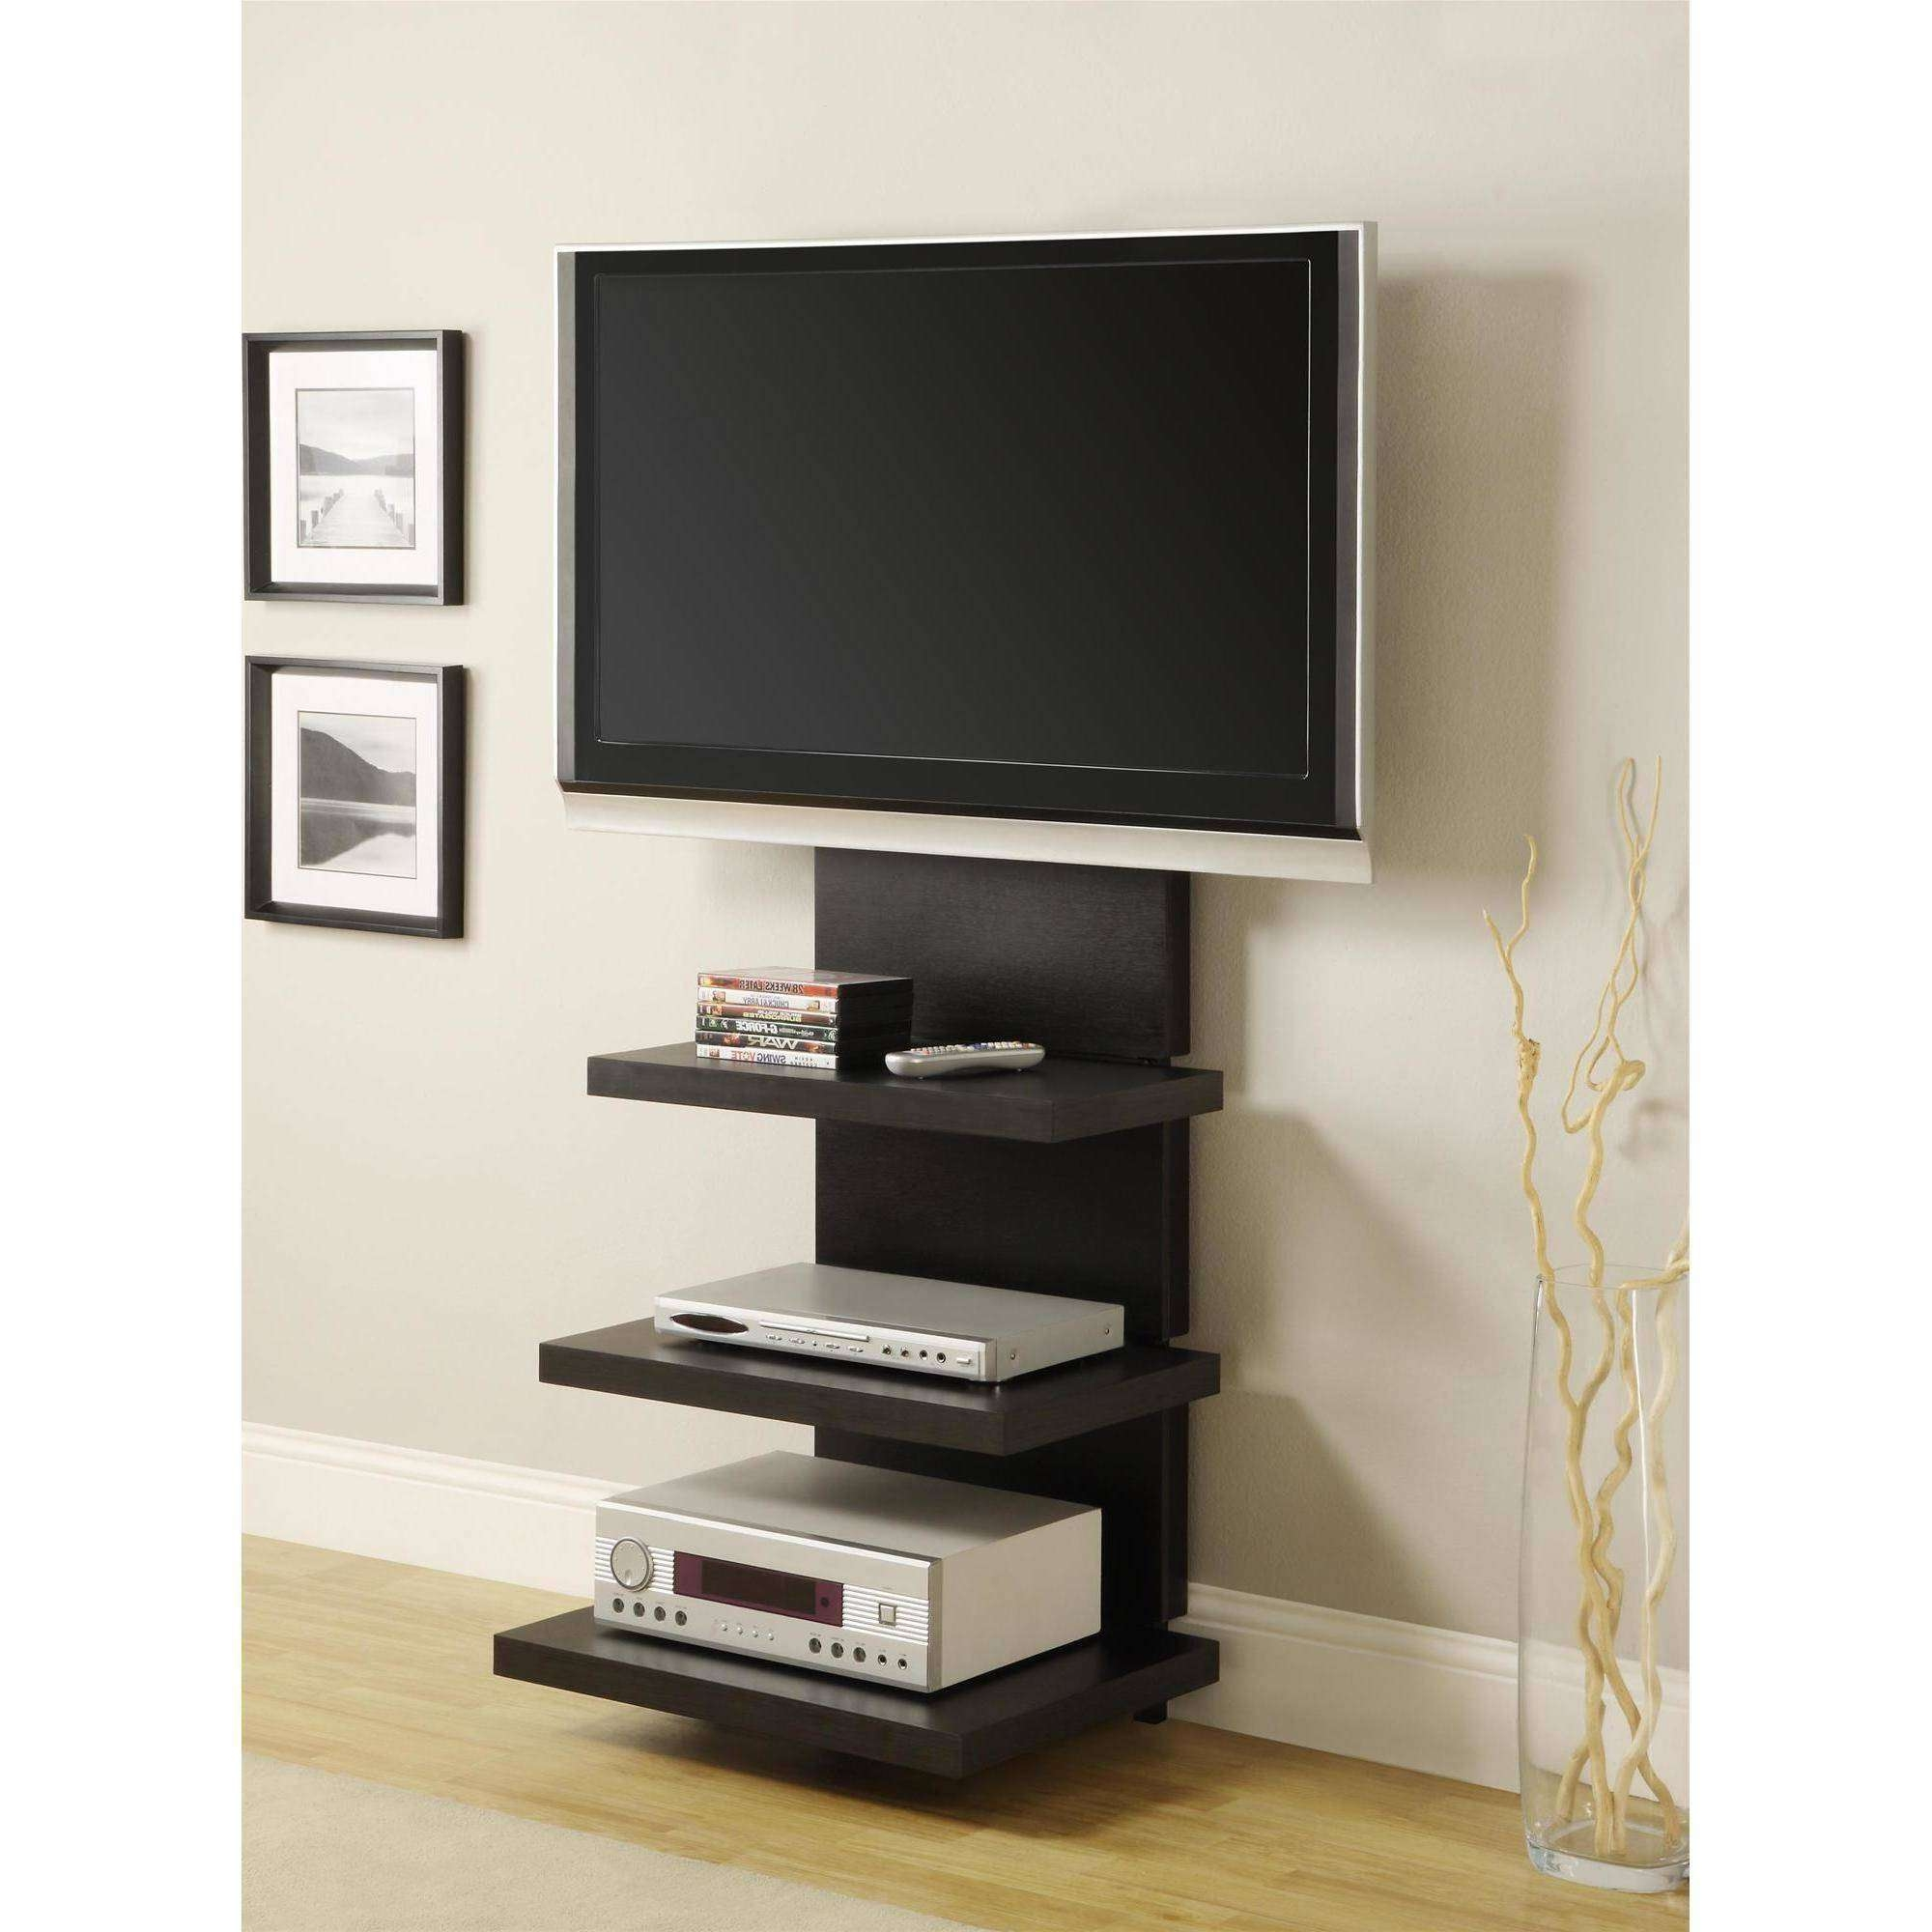 Decoration : Tv Stand For 60 Inch Tv Tv Wall Unit Swivel Tv Mount In Tall Tv Cabinets Corner Unit (View 5 of 20)